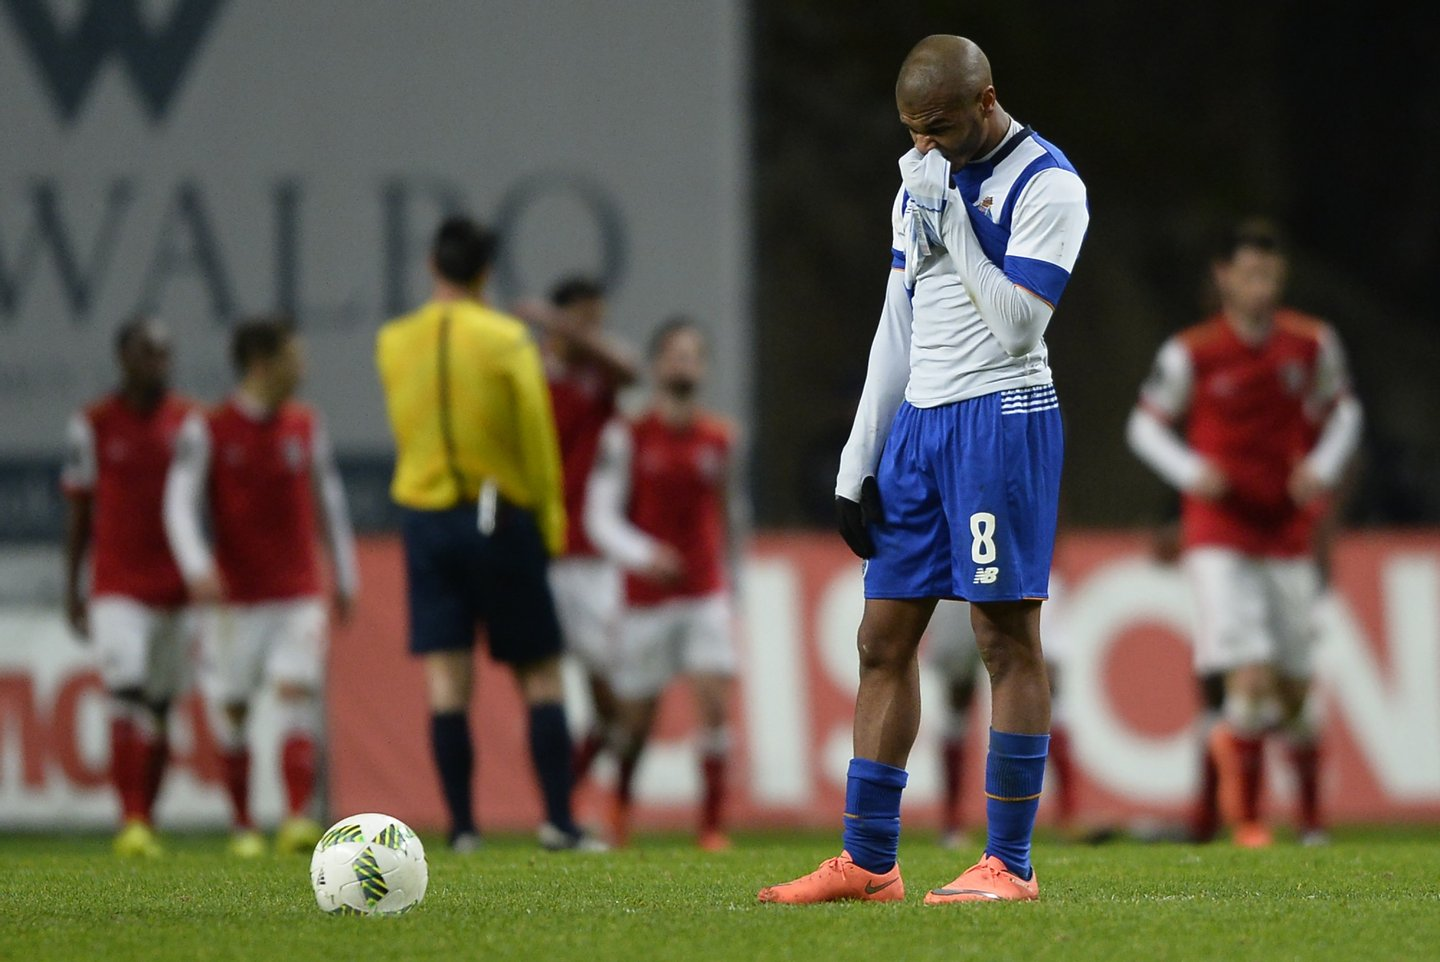 Porto's Algerian midfielder Yacine Brahimi reacts after the third goal scored by Braga during the Portuguese league football match SC Braga vs FC Porto at the AXA stadium in Braga on March 6, 2016. Braga won the match 3-1. / AFP / MIGUEL RIOPA (Photo credit should read MIGUEL RIOPA/AFP/Getty Images)